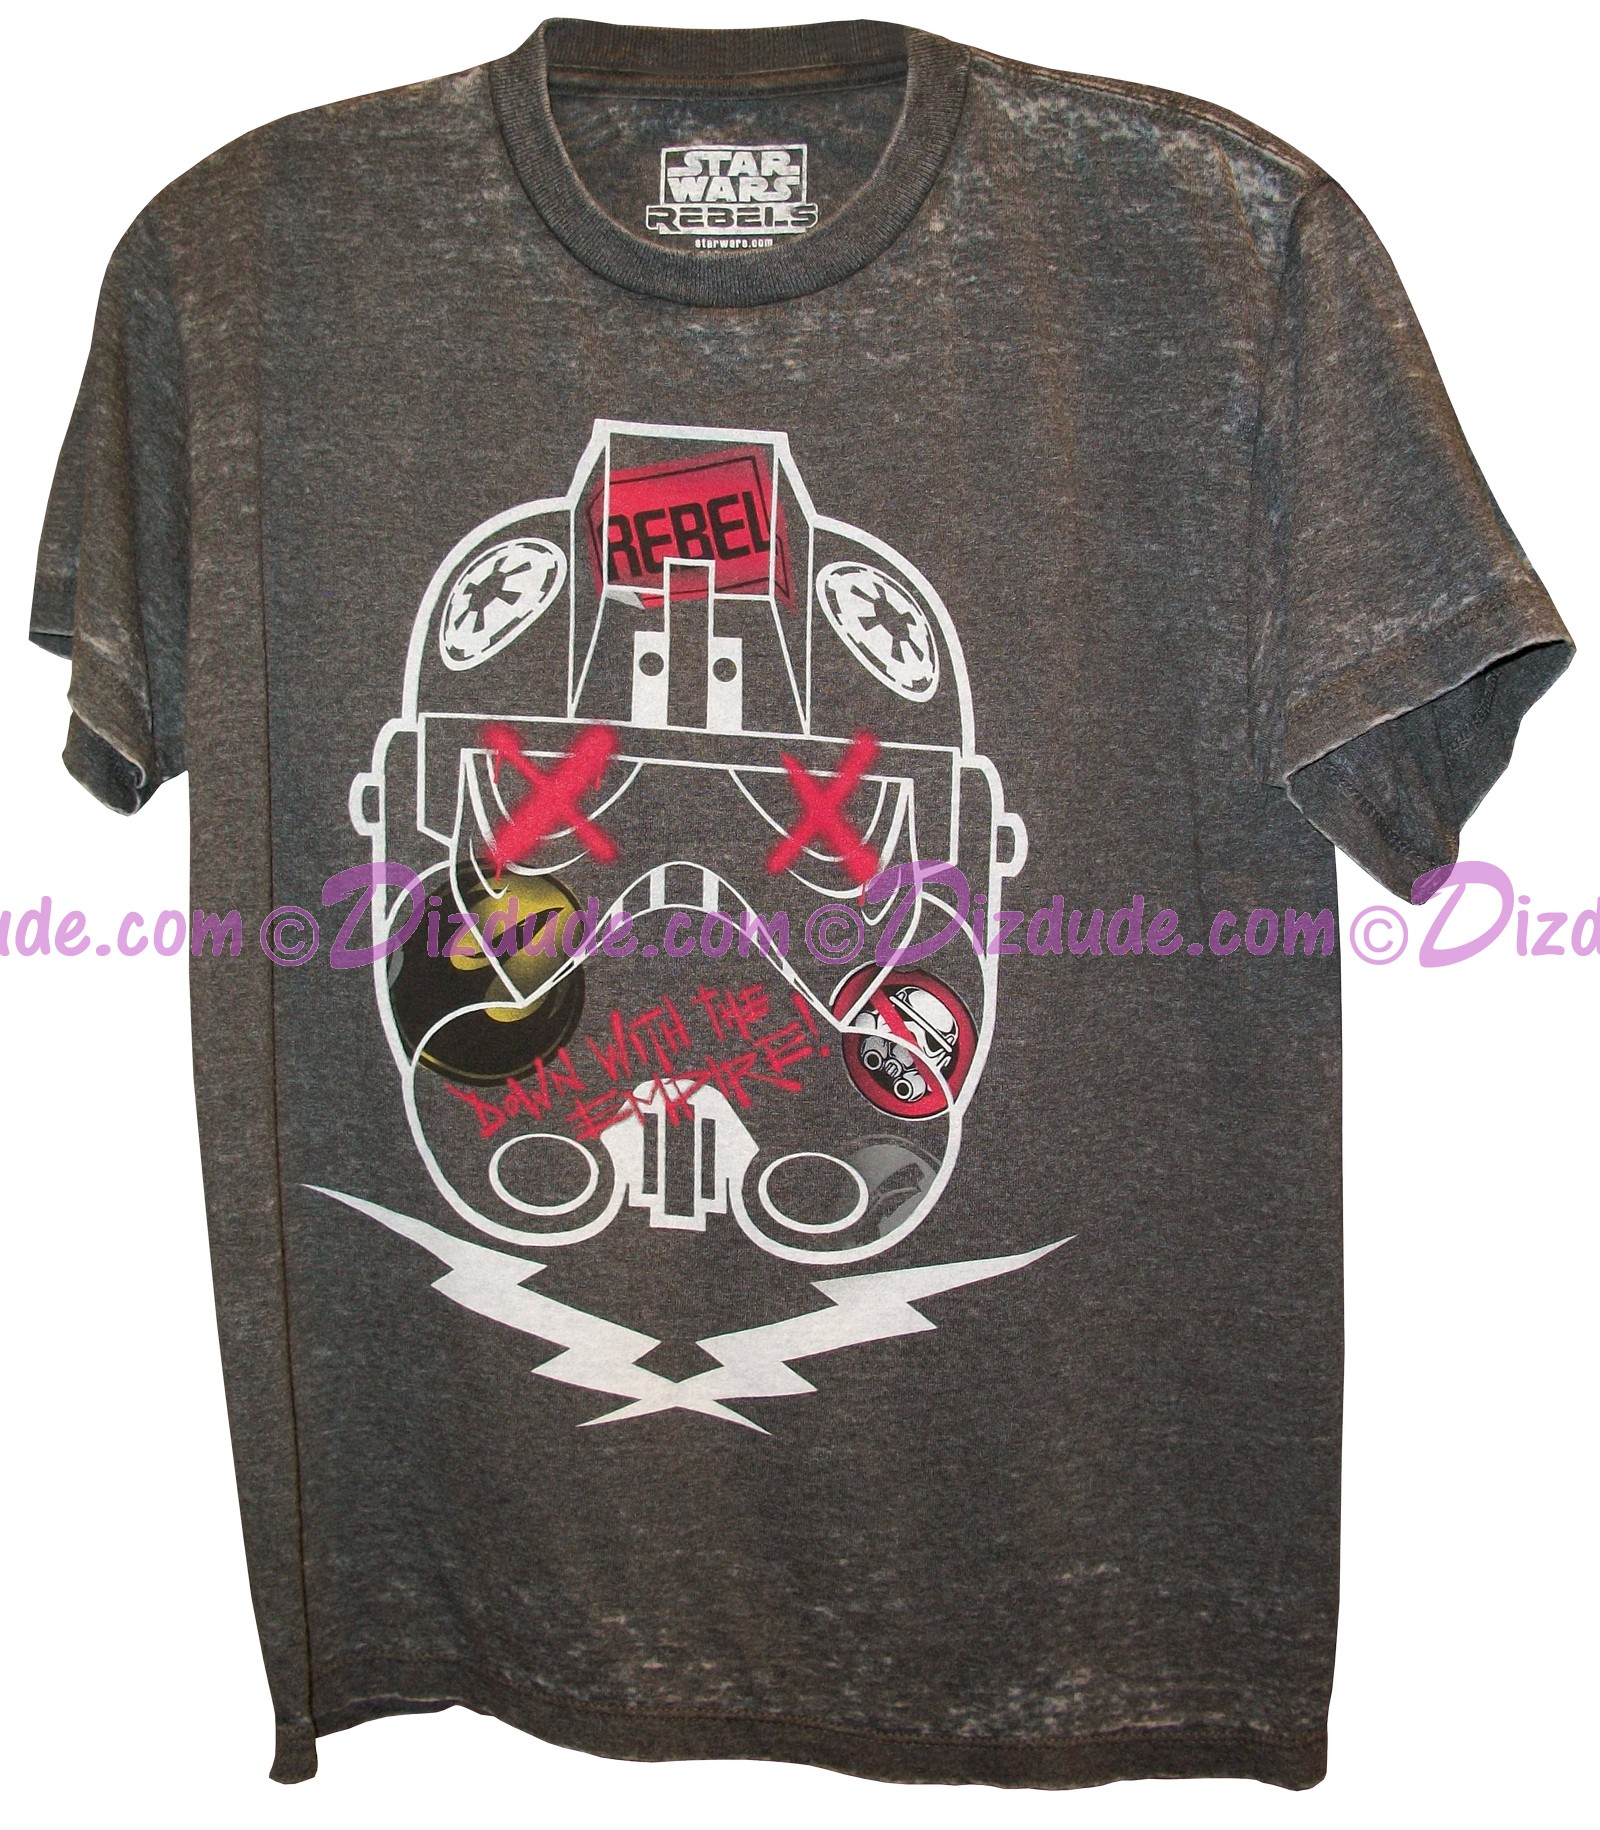 Disney Star Wars REBEL Graffiti Youth T-shirt